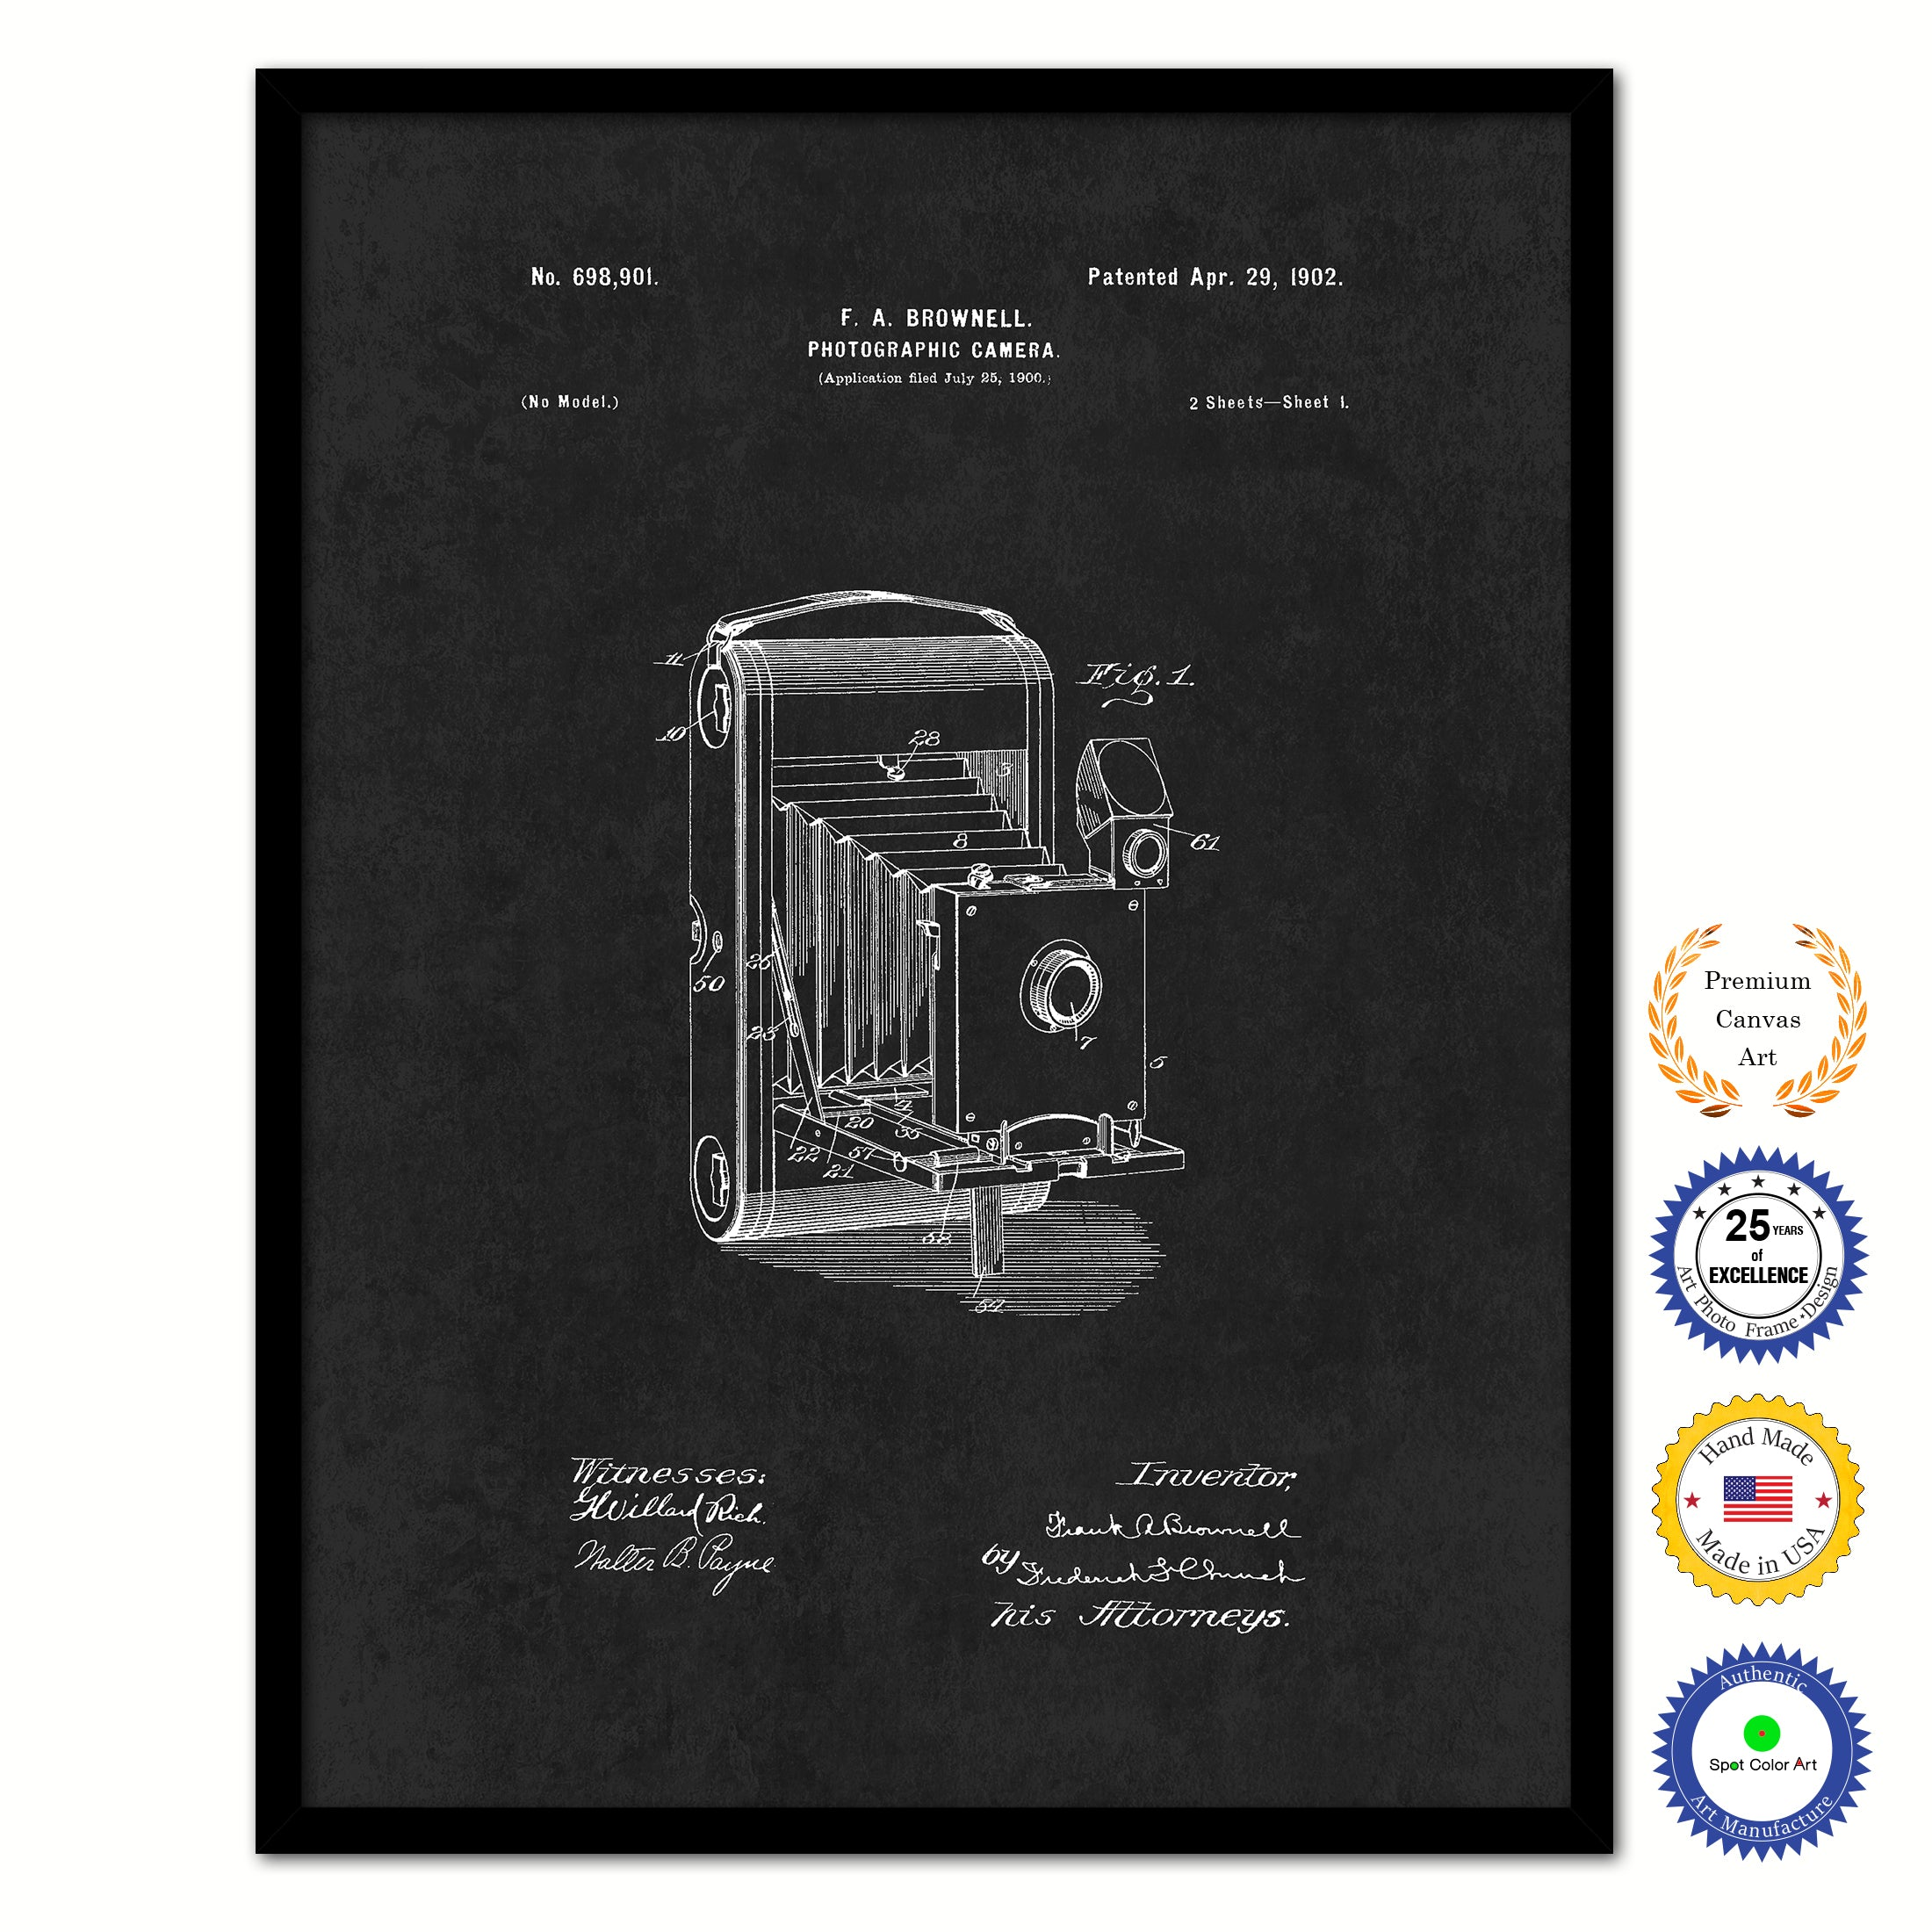 1902 Photographic Brownie Camera Vintage Patent Artwork Black Framed Canvas Home Office Decor Great Gift for Photographer